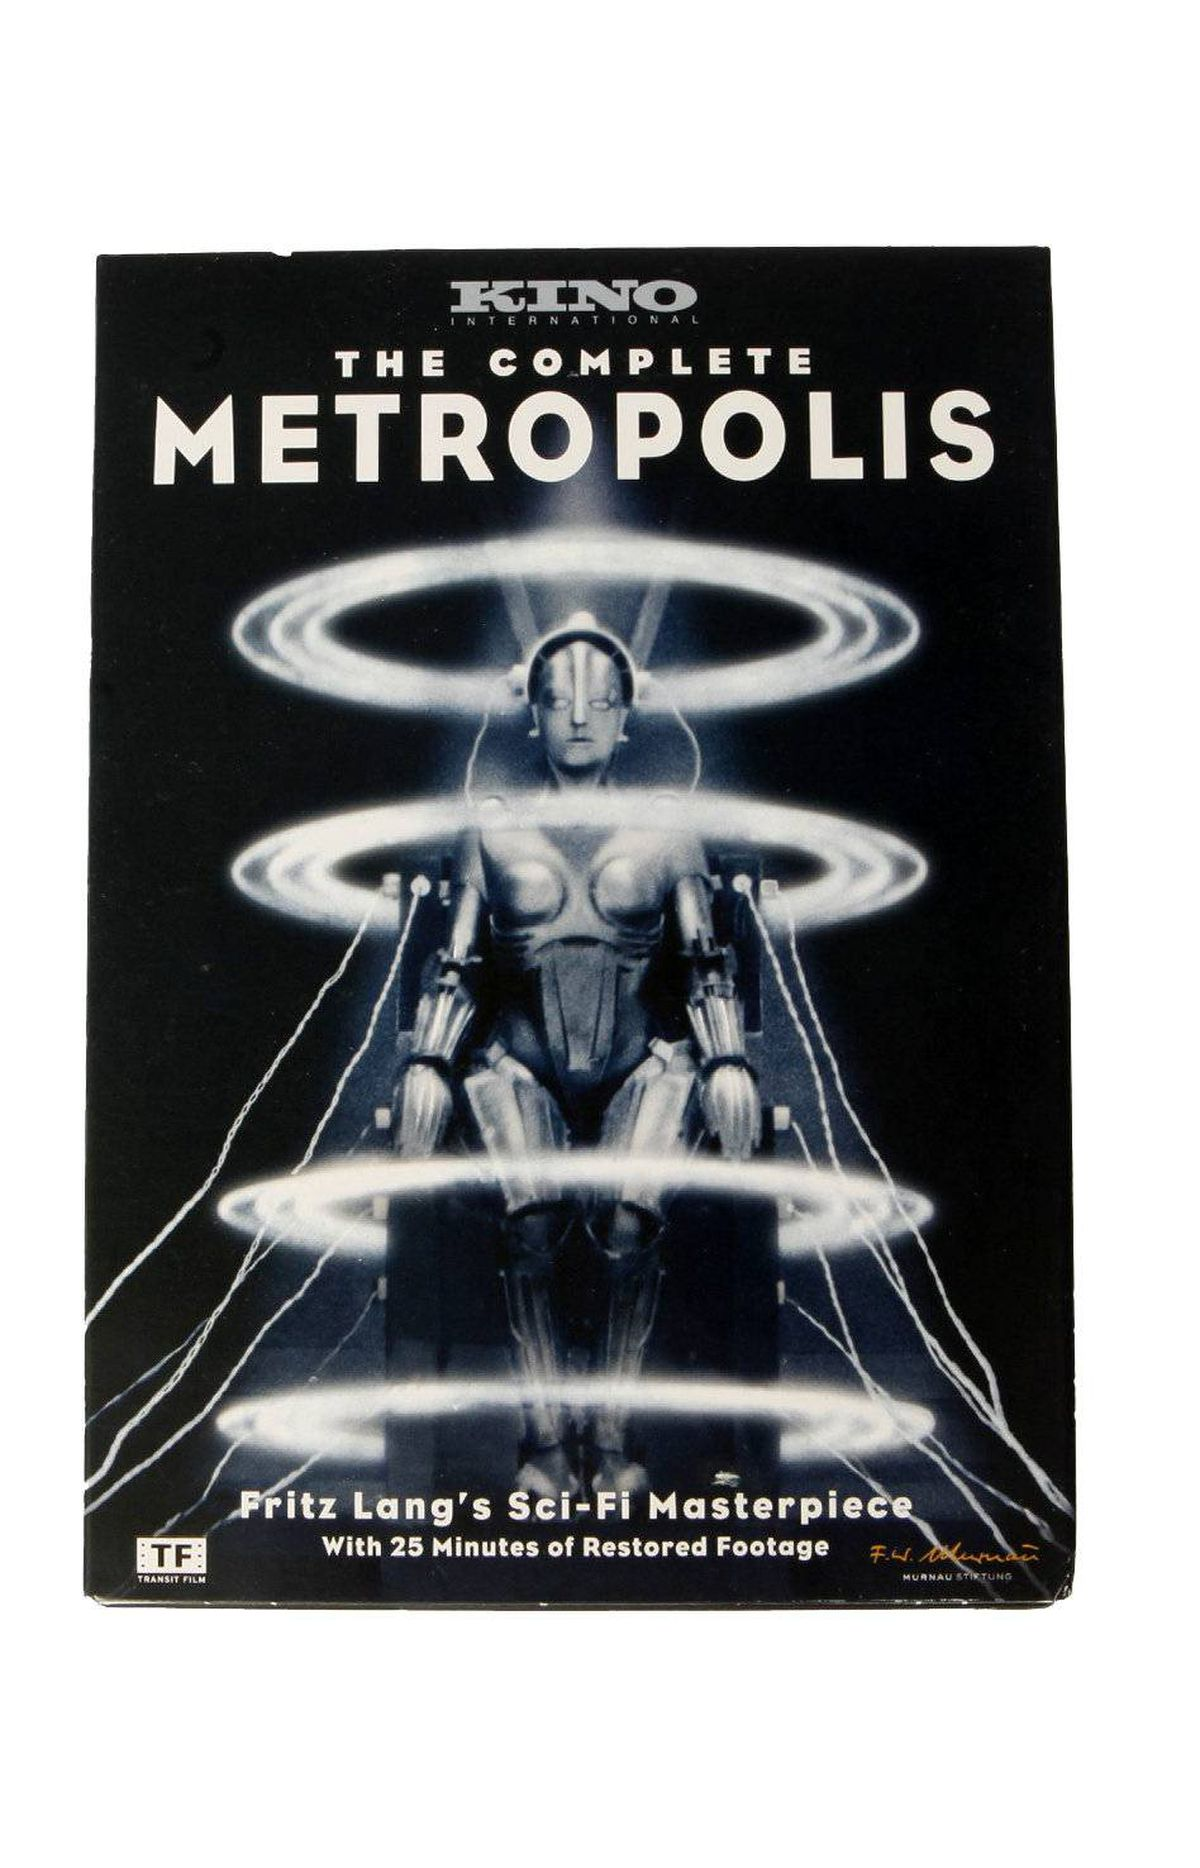 The Complete Metropolis on DVD For some viewers, the sound of Fritz Lang's Metropolis is the 1984 pop score assembled by Giorgio Moroder and performed by the likes of Loverboy and Pat Benatar. The latest reconstructed version of the 1927 silent film returns to the superb original score by Gottfried Huppertz, newly recorded in full by Frank Strobel and the Berlin Radio Symphony Orchestra. $20 at chapters.indigo.ca; and at amazon.ca